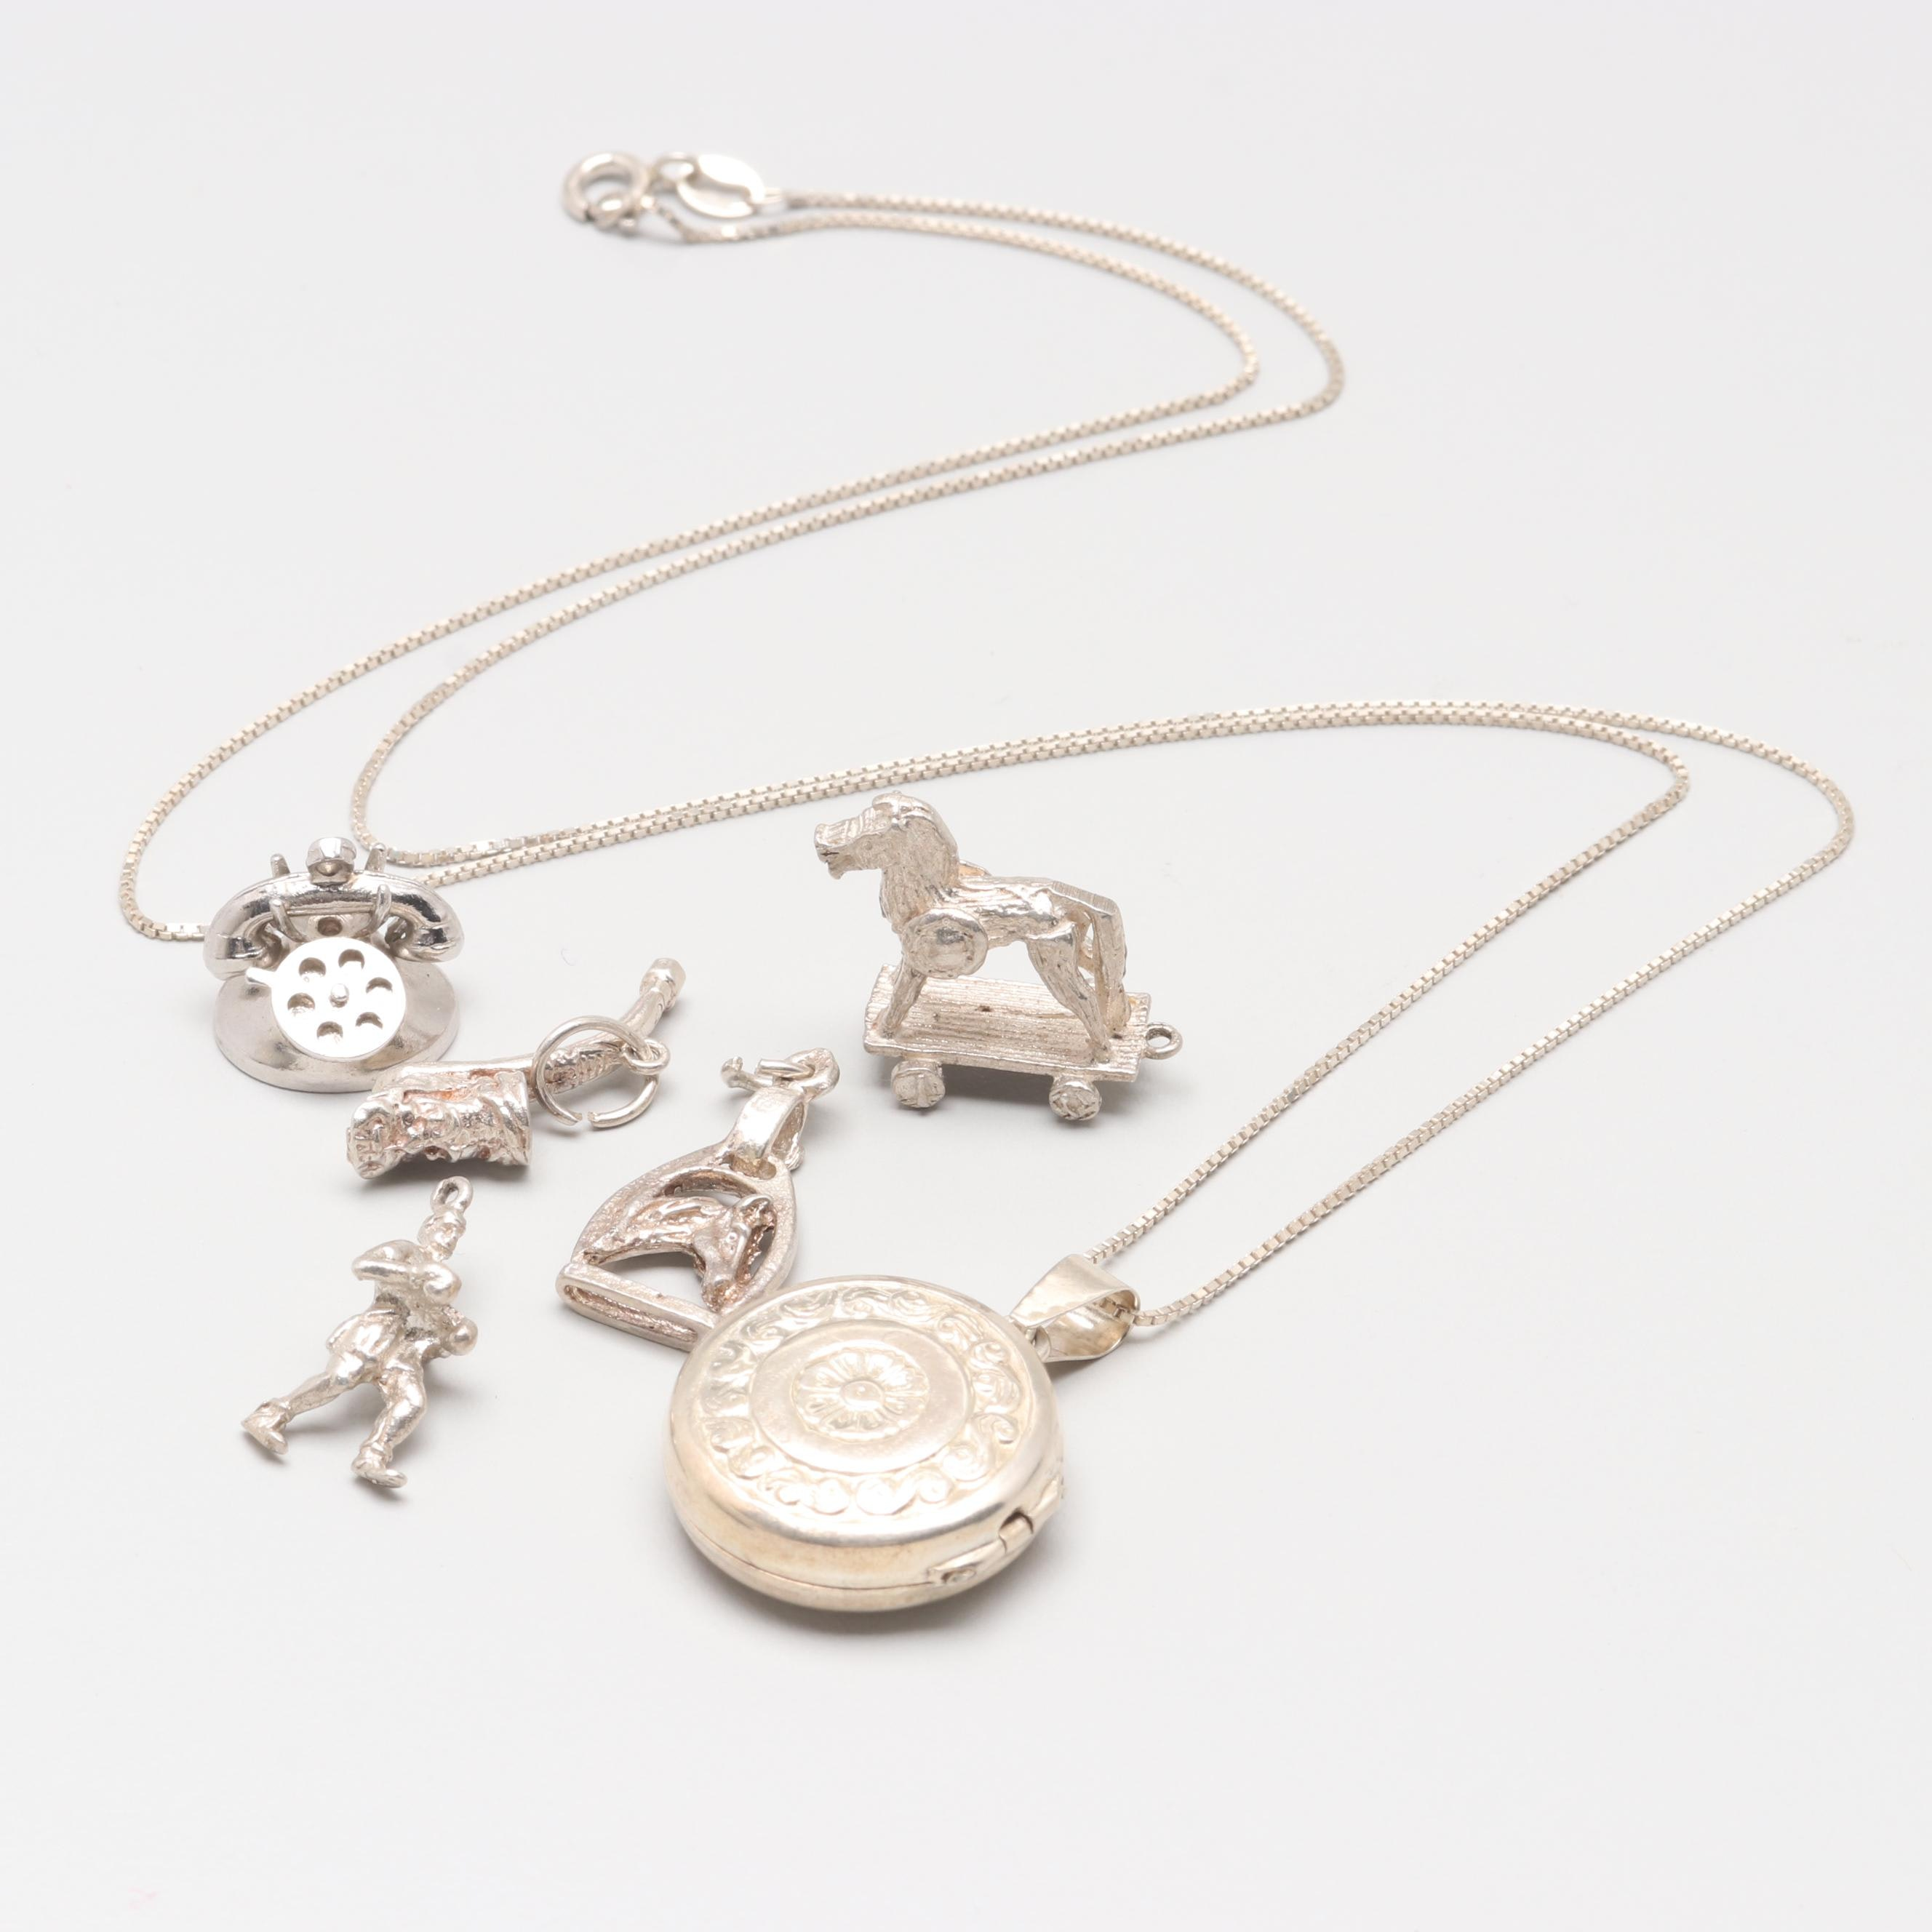 Sterling Silver Jewelry Collection Including Locket Necklace and Charms